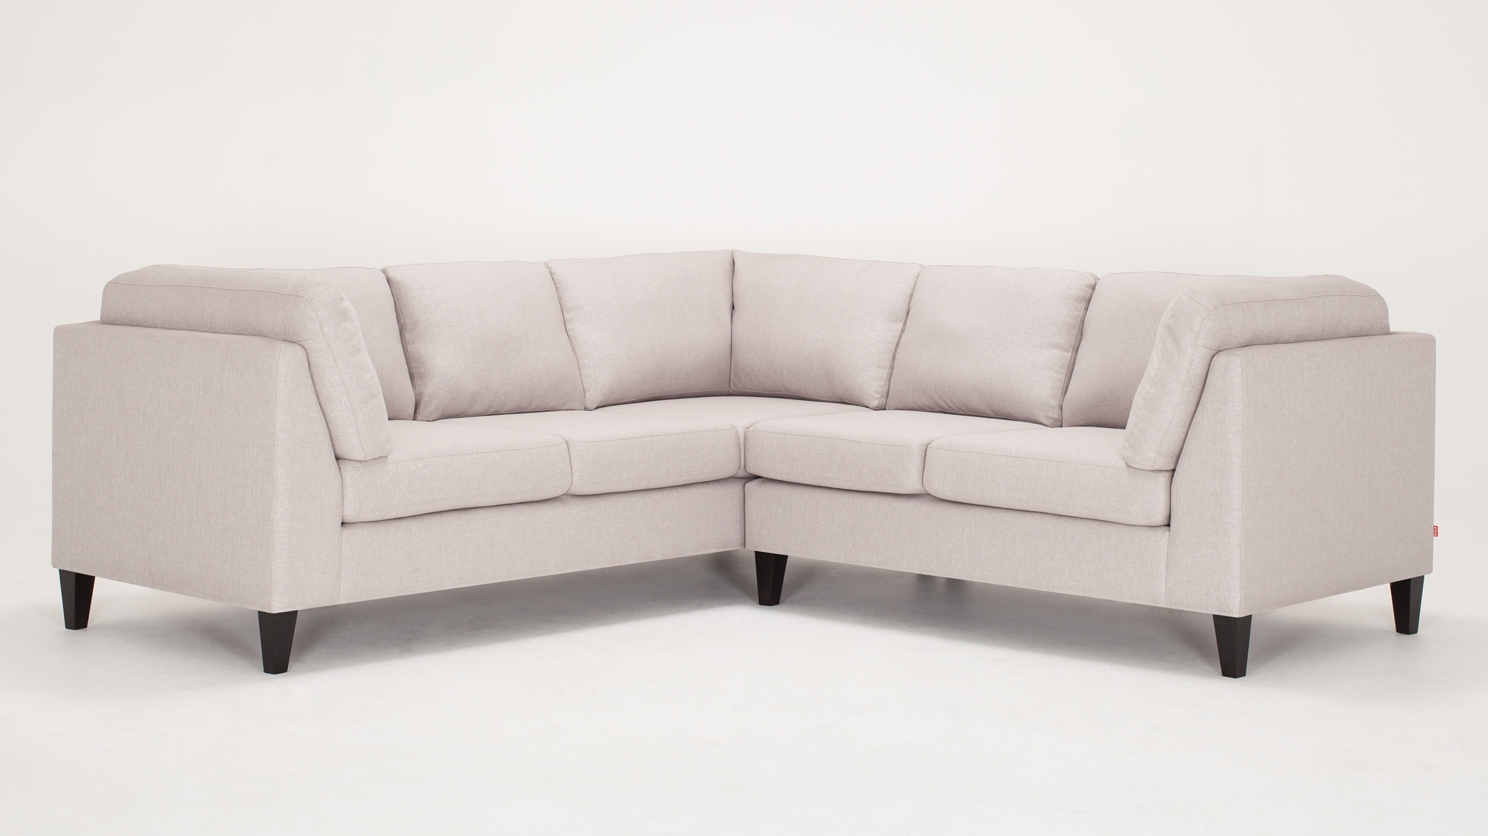 Eq3 | Salema 2 Piece Sectional Sofa – Fabric Pertaining To Eq3 Sectional Sofas (Image 9 of 10)